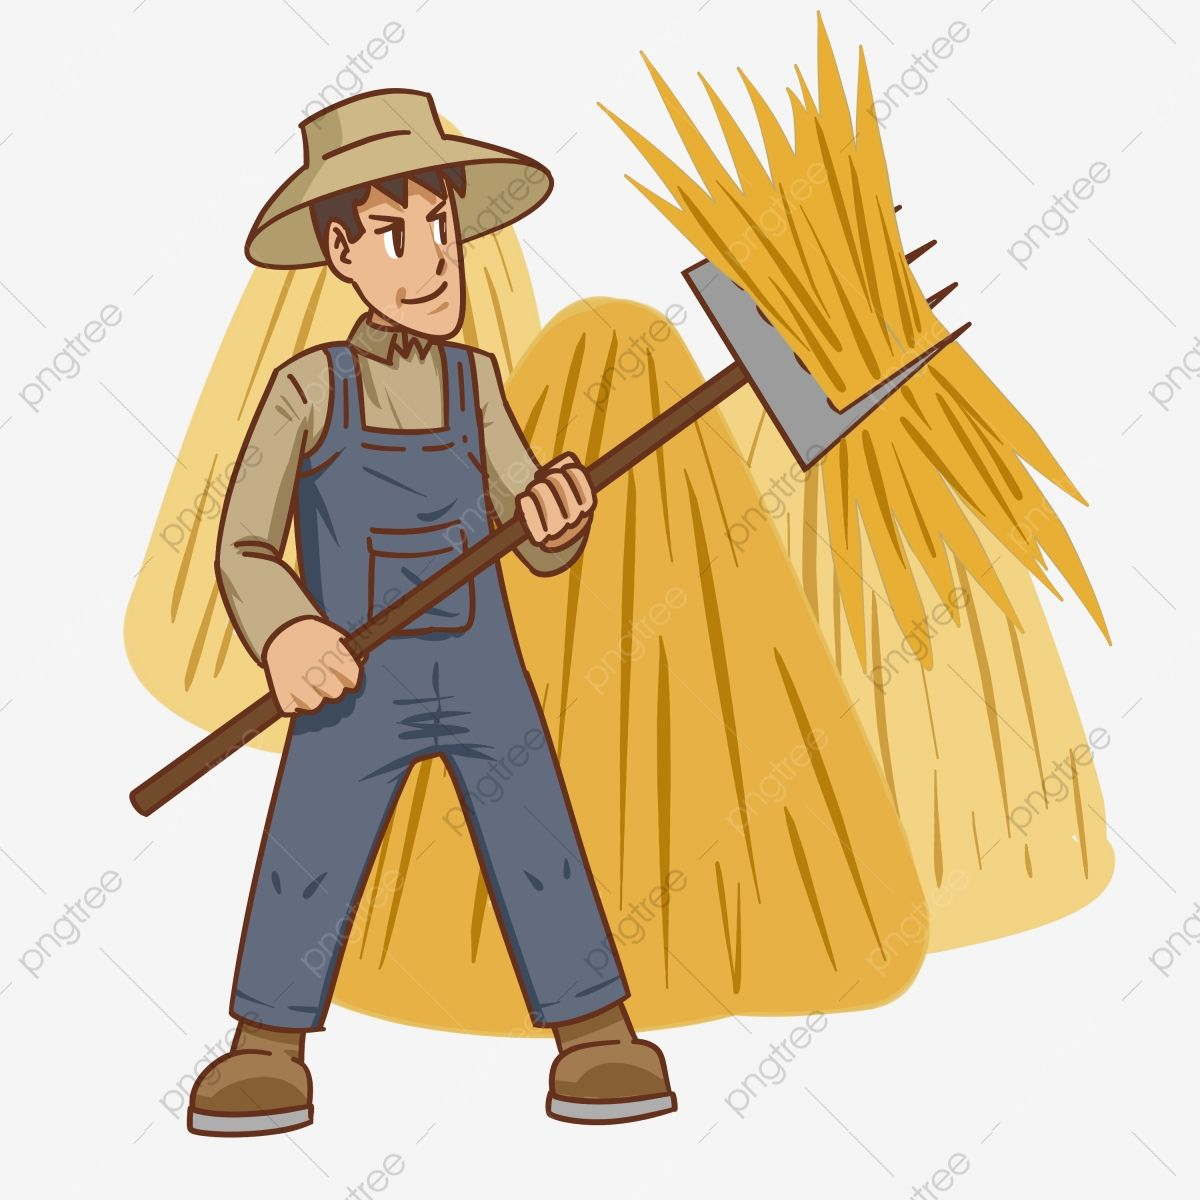 Hand Drawn Peasant Figures Farmers Picking A Bundle Of Grain Harvest Cartoon Peasant Character Grain Haystack Harvesting Character Illustration Png Transpare In 2021 How To Draw Hands Character Illustration Cartoon Clip Art